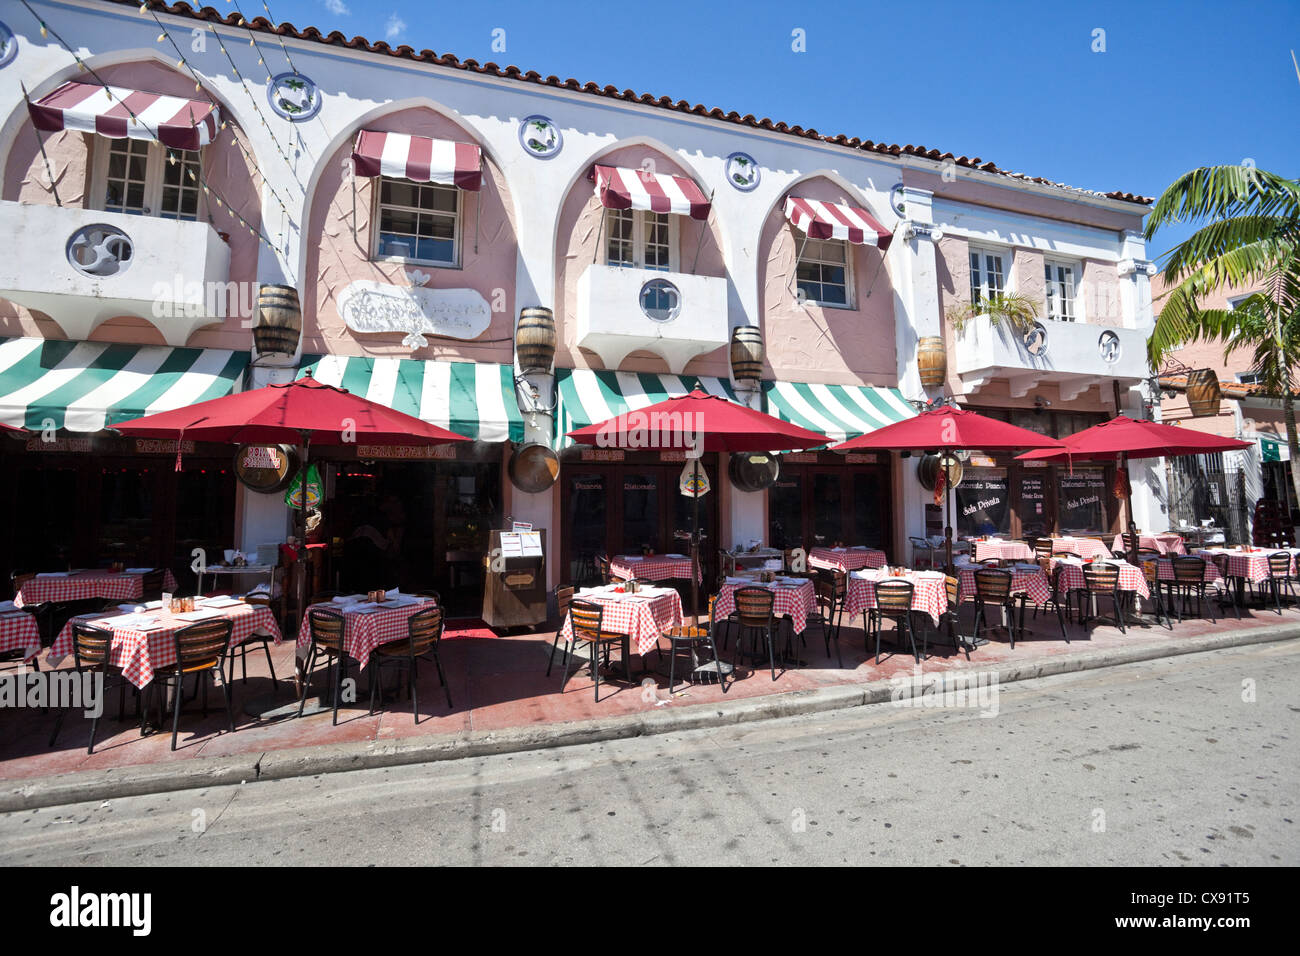 Piccola Cucina Miami Beach Restaurants On Espanola Way Miami Beach Florida Usa Stock Photo